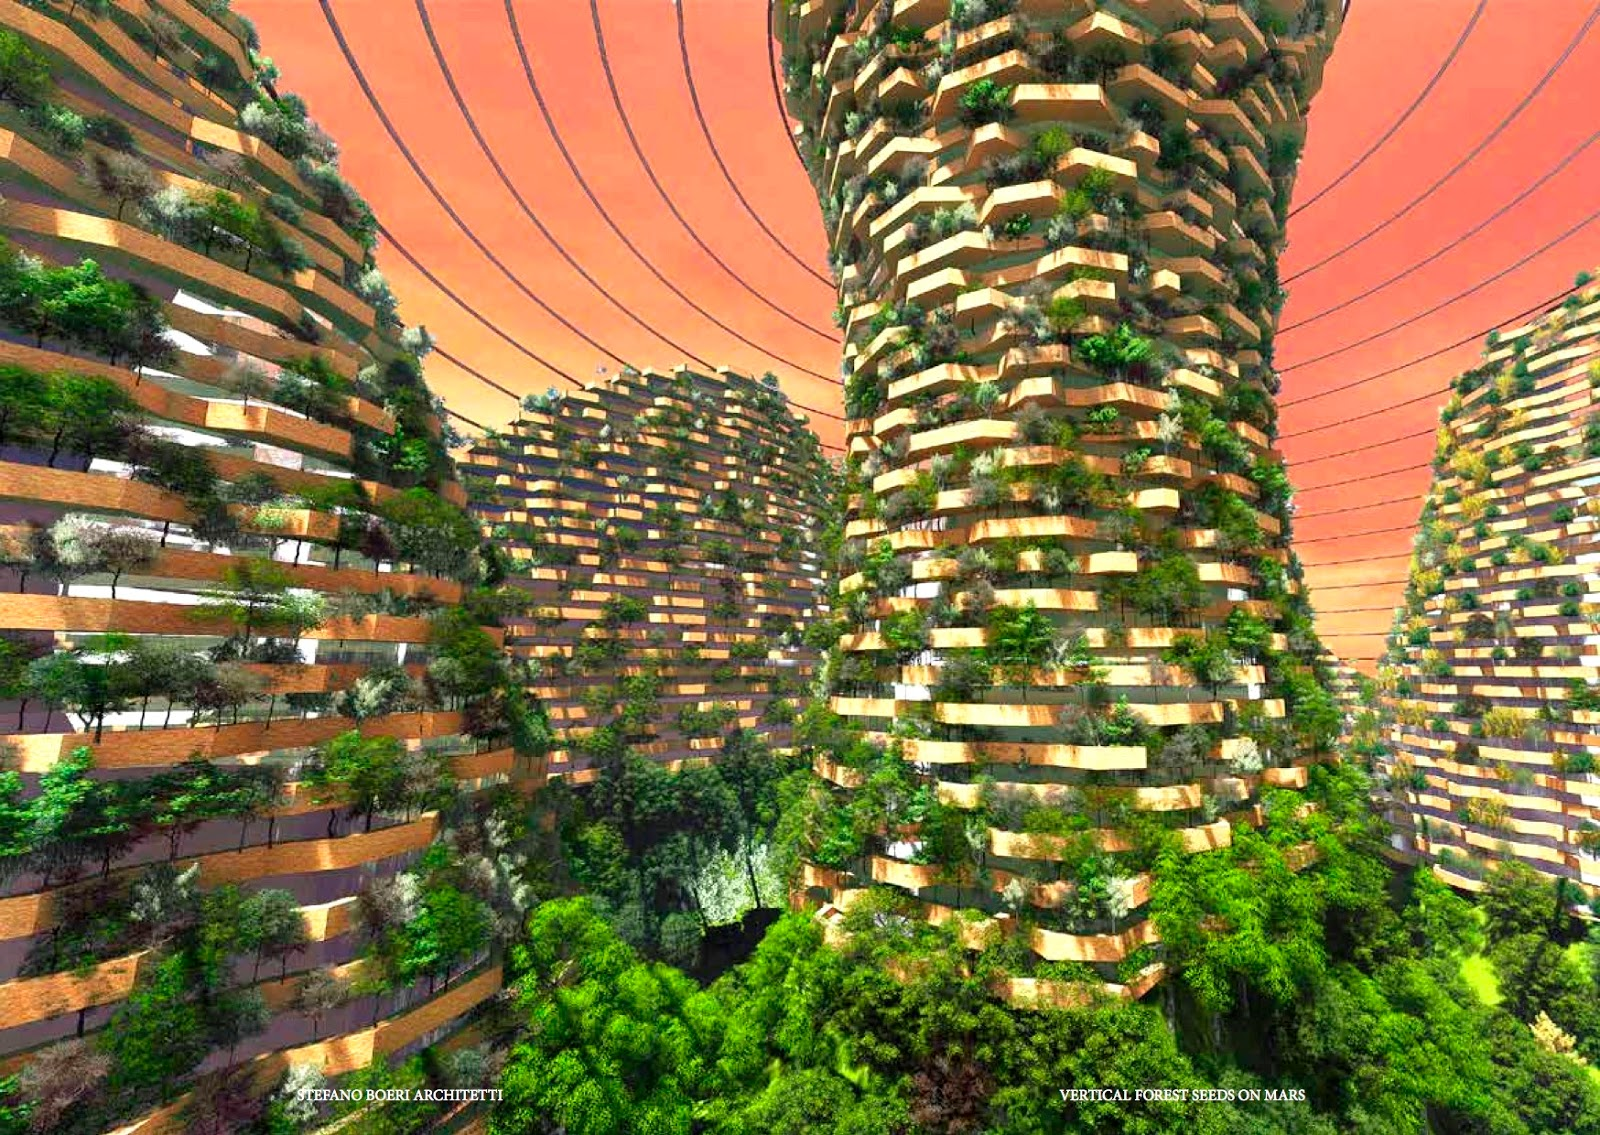 New Shanghai 2117 vertical forest skyscraper eco-city on Mars by Stefano Boeri